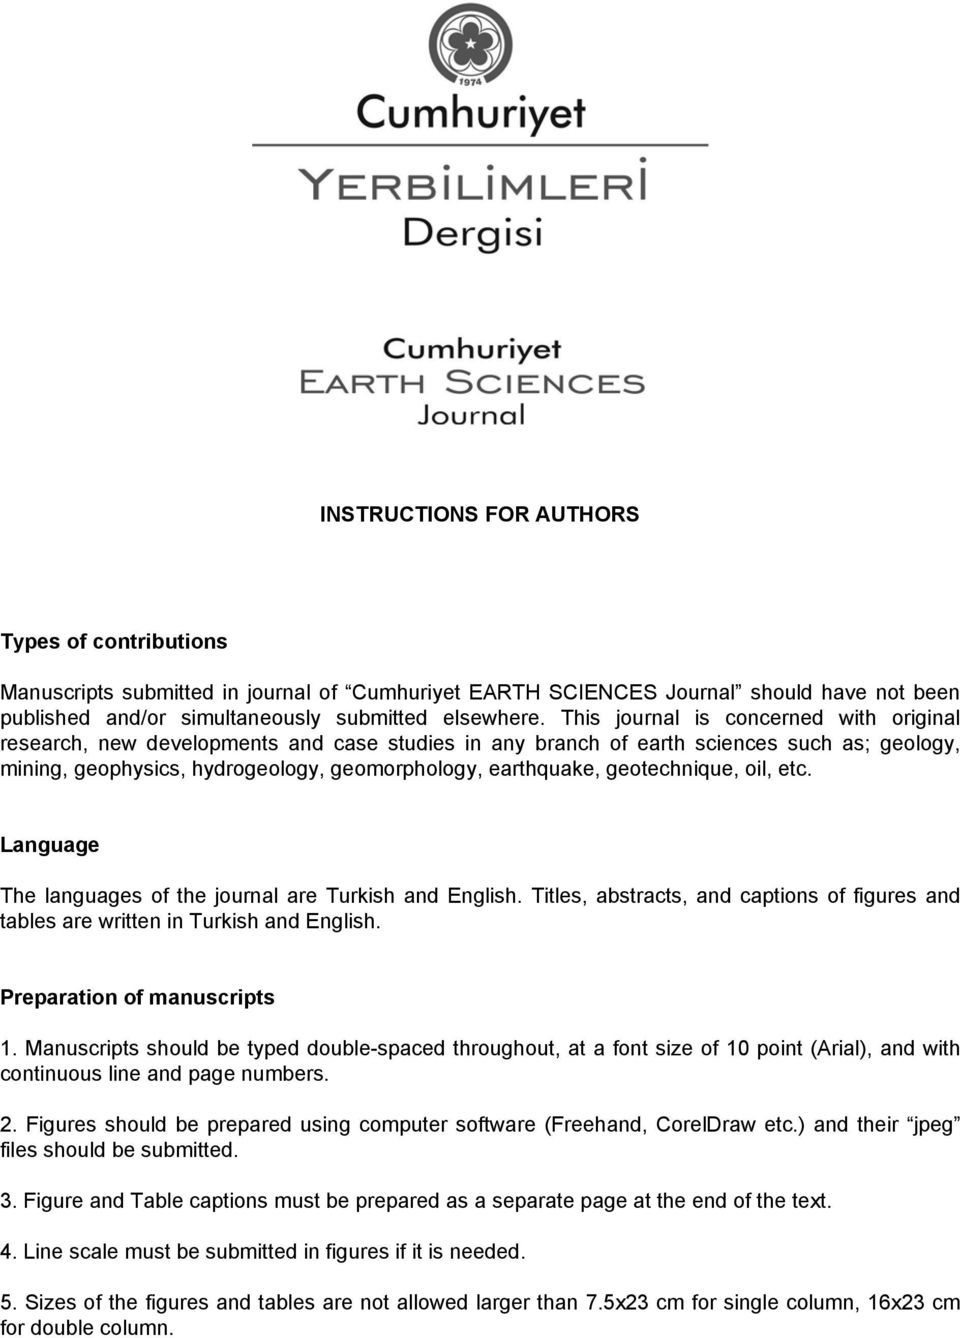 geotechnique, oil, etc. Language The languages of the journal are Turkish and English. Titles, abstracts, and captions of figures and tables are written in Turkish and English.